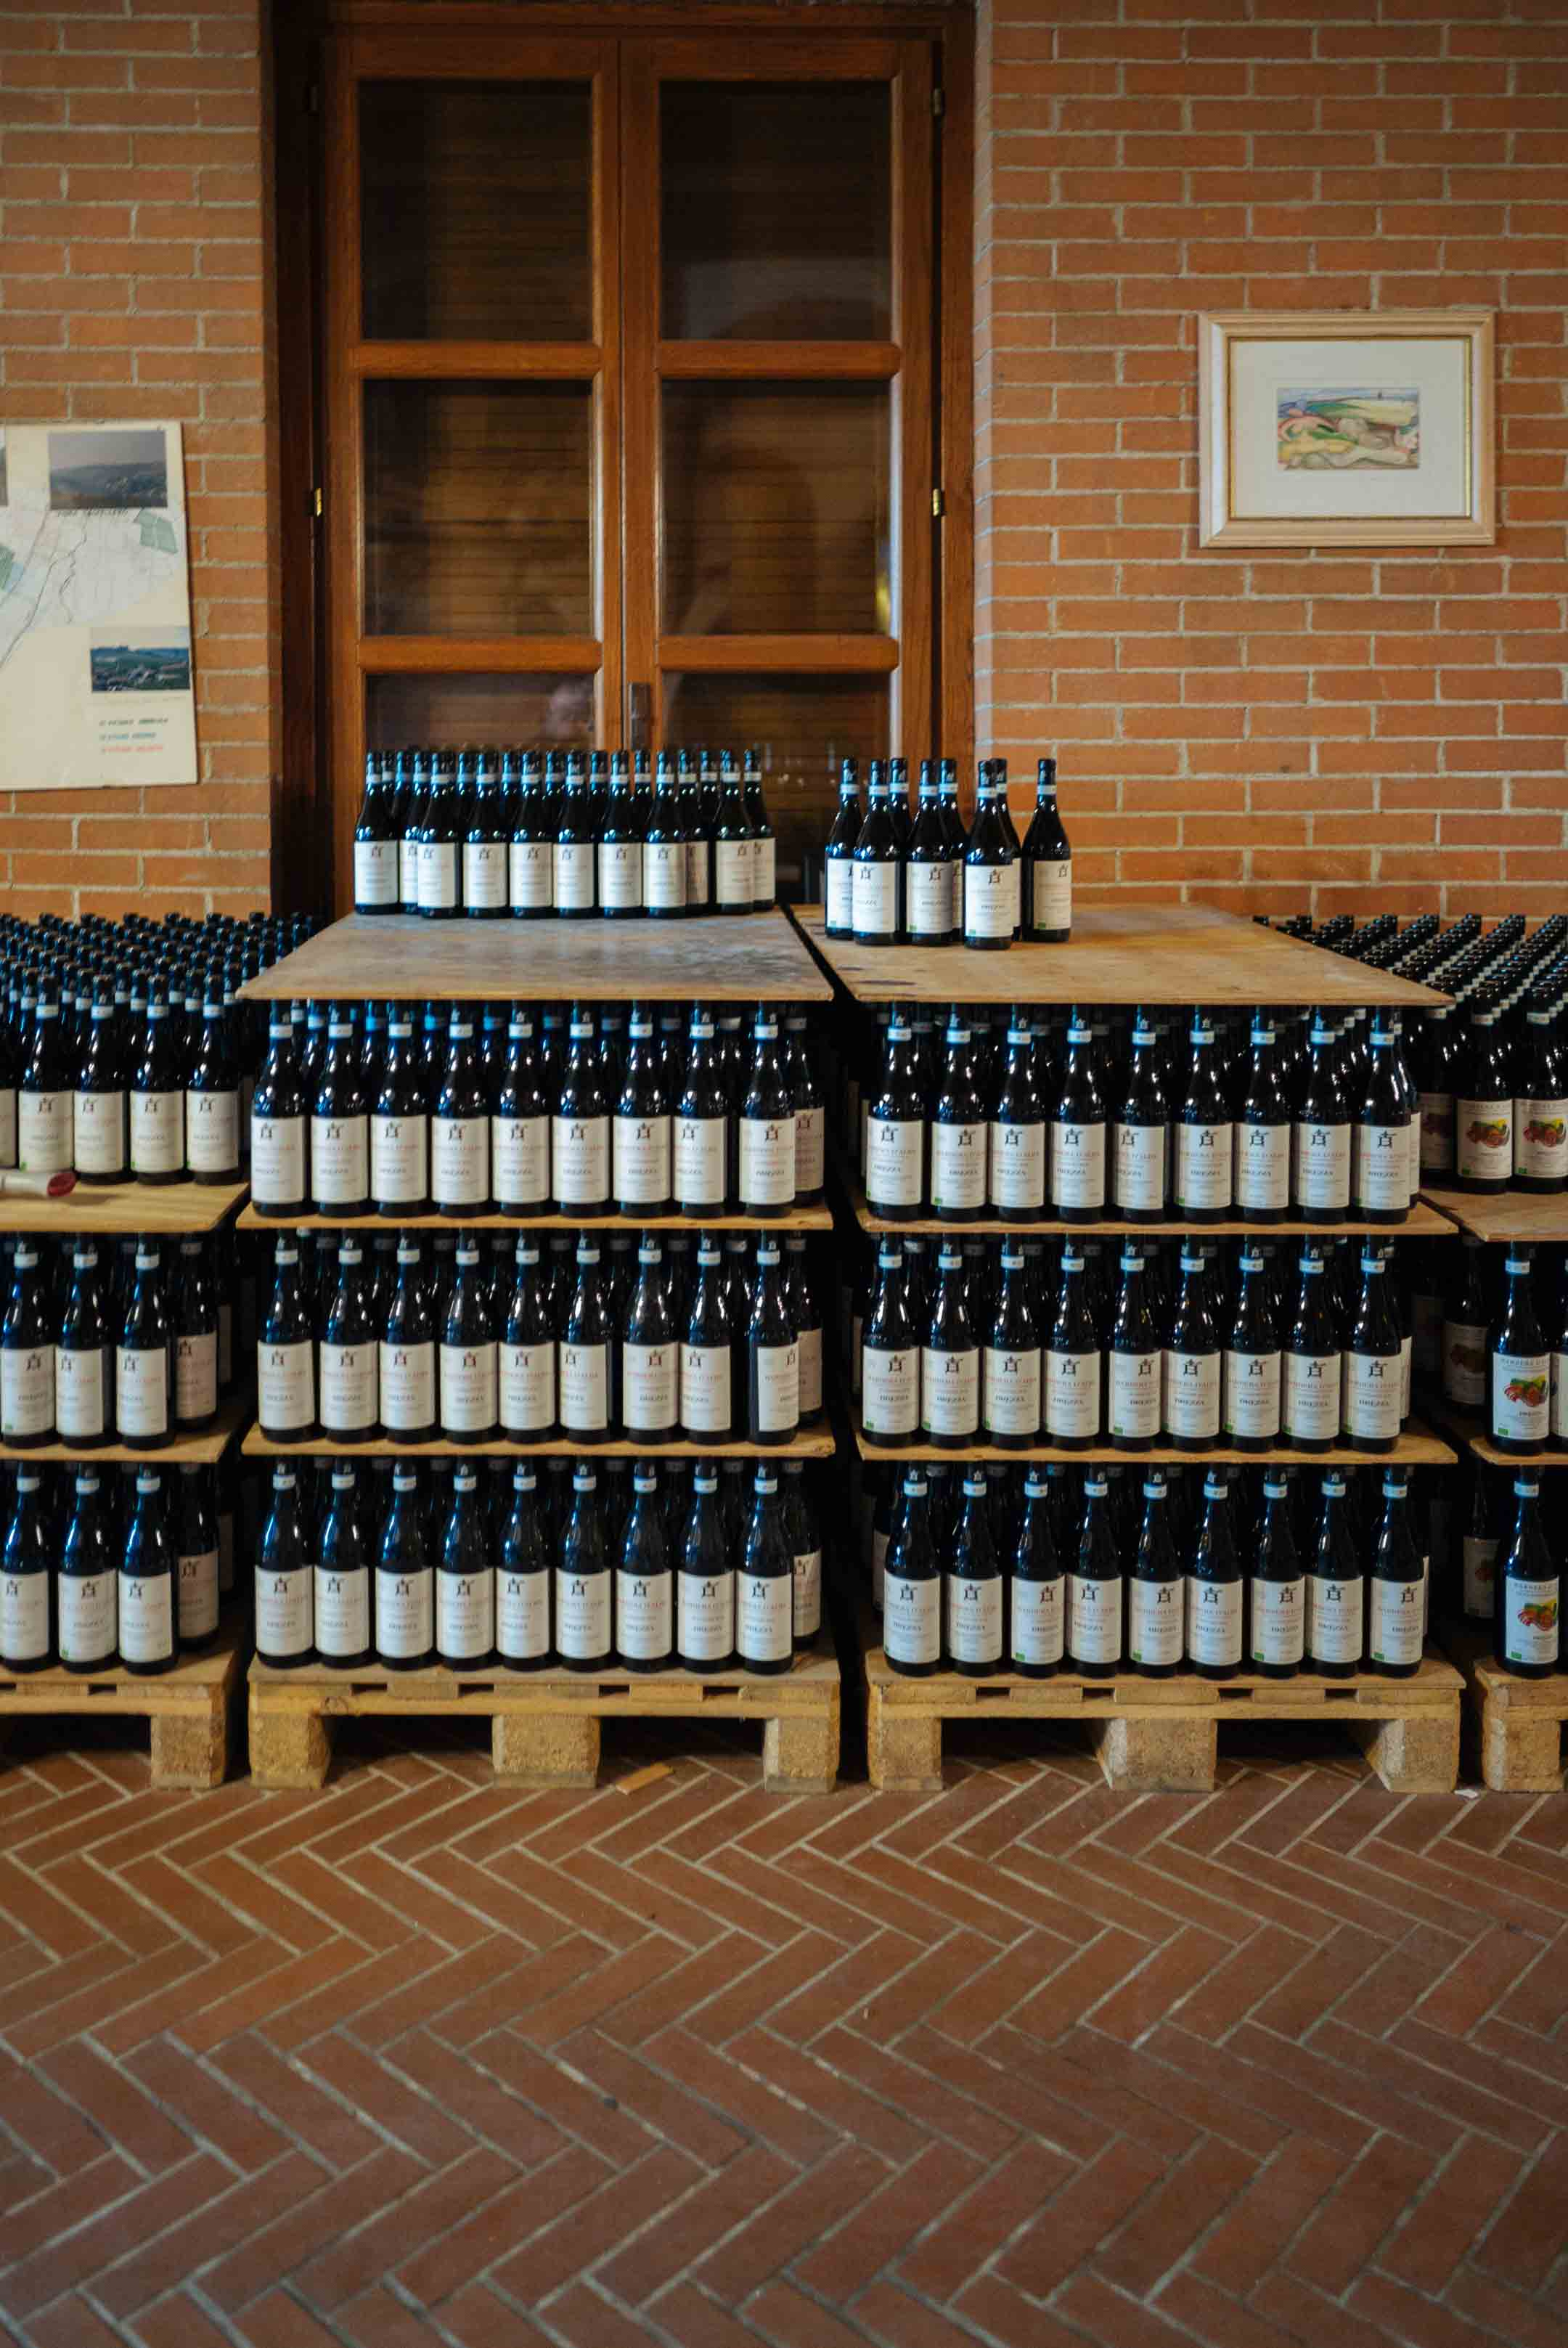 Brezza winery is located just at the edge of town of Barolo